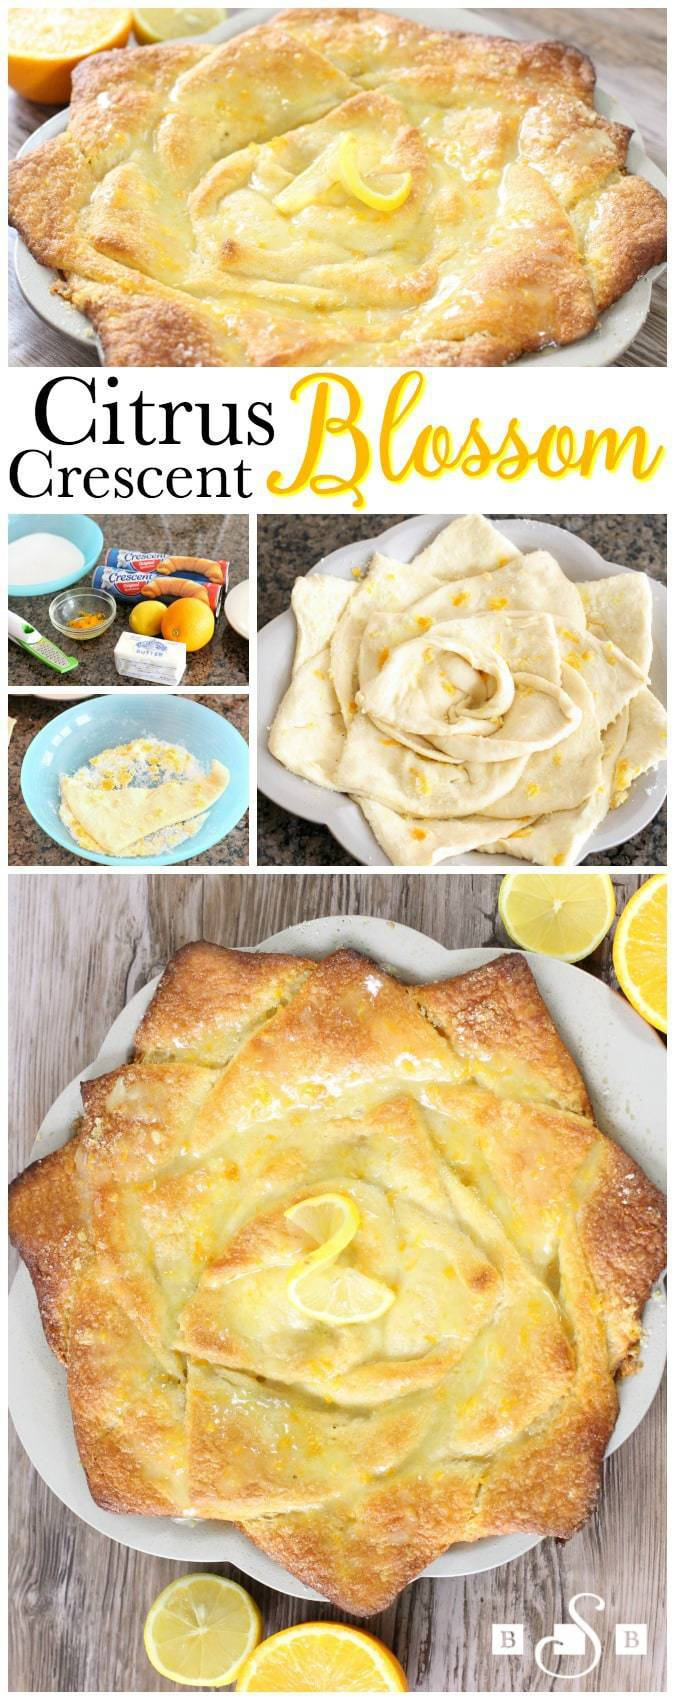 I had several rolls of crescent dough in my fridge that were begging for a recipe to use them in. I wanted to make something a little different that was still easy and had a nice, sweet, Spring flavor. I ended up coating the uncooked crescent dough in a mixture of sugar and citrus zest, then arranged the pieces in a pie pan to resemble a spring blossom. It worked beautifully- and tasted delightful! It's sweet enough to be a dessert, but I also enjoy it with breakfast or brunch. I created a video to show you just how to do it- scroll down to watch!